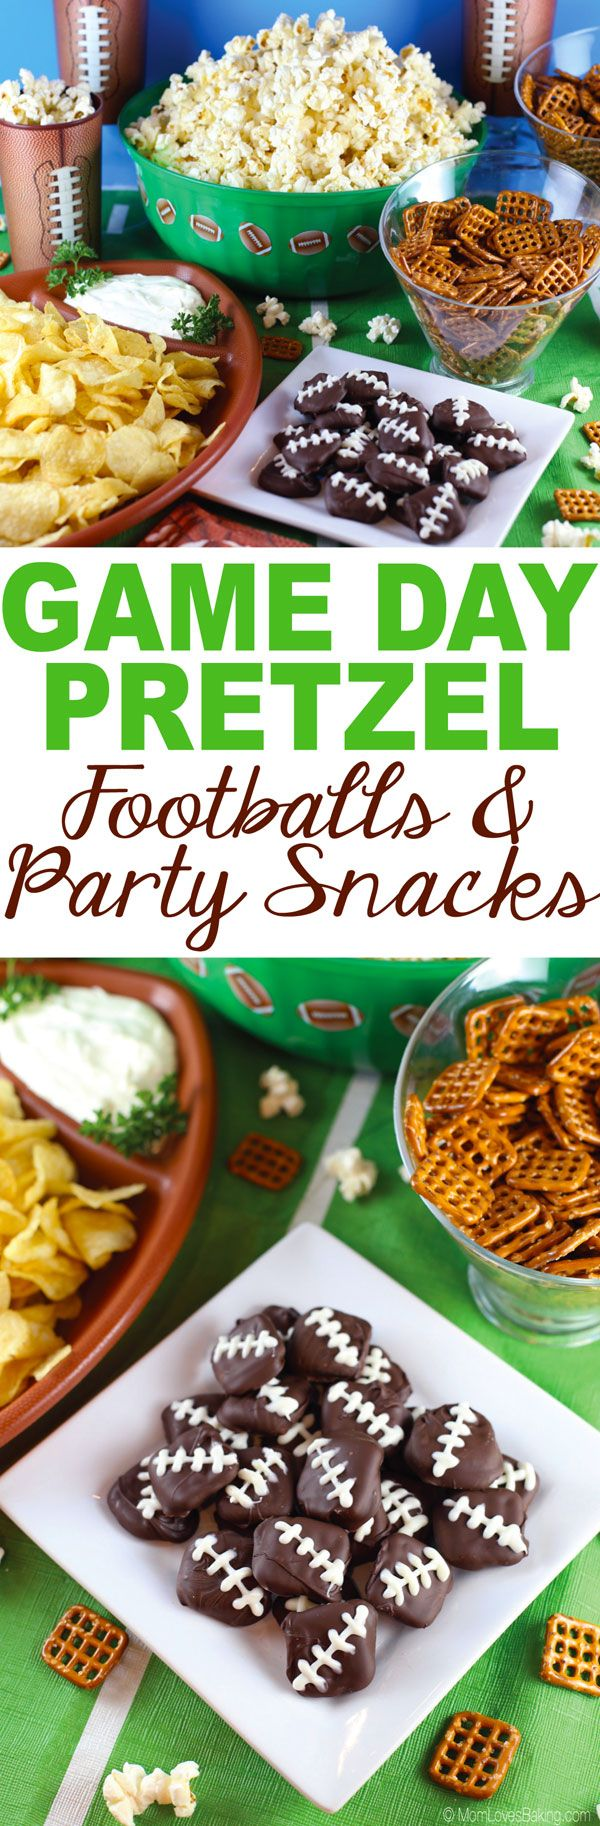 Getting excited about the BIG GAME? Check out my favorite football snacks, including these Game Day Pretzel Footballs made with @Snyder's of Hanover ! They're super easy to make! {#ad} #timetocrunch @Pop Secret @Cape Cod - Recipe on MomLovesBaking.com